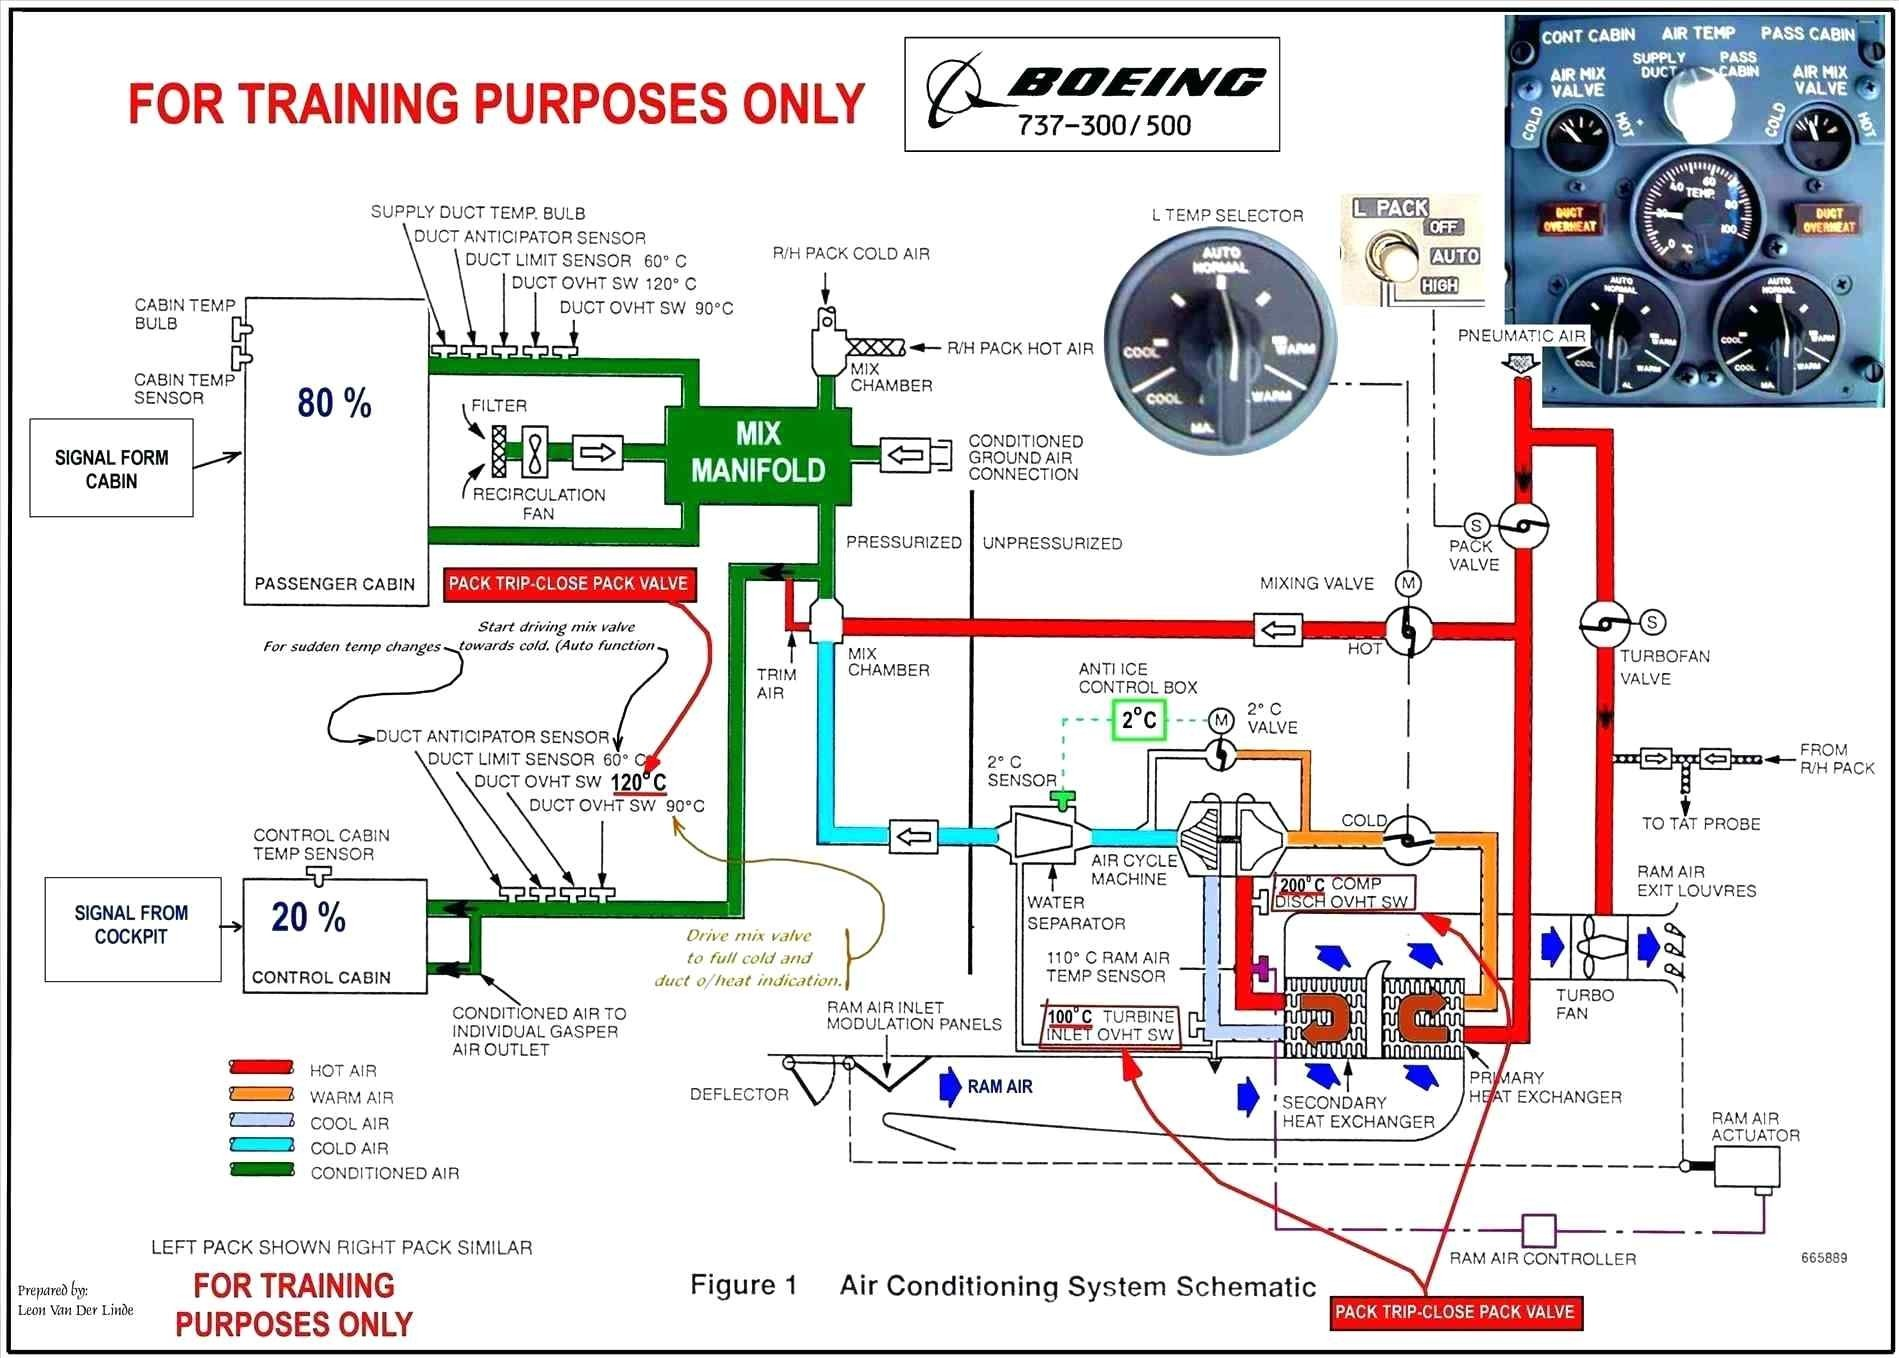 Diagram Of Auto Ac System Car Diagram Car Diagram Wiring for Auto Air Conditioning New Pdf Of Diagram Of Auto Ac System